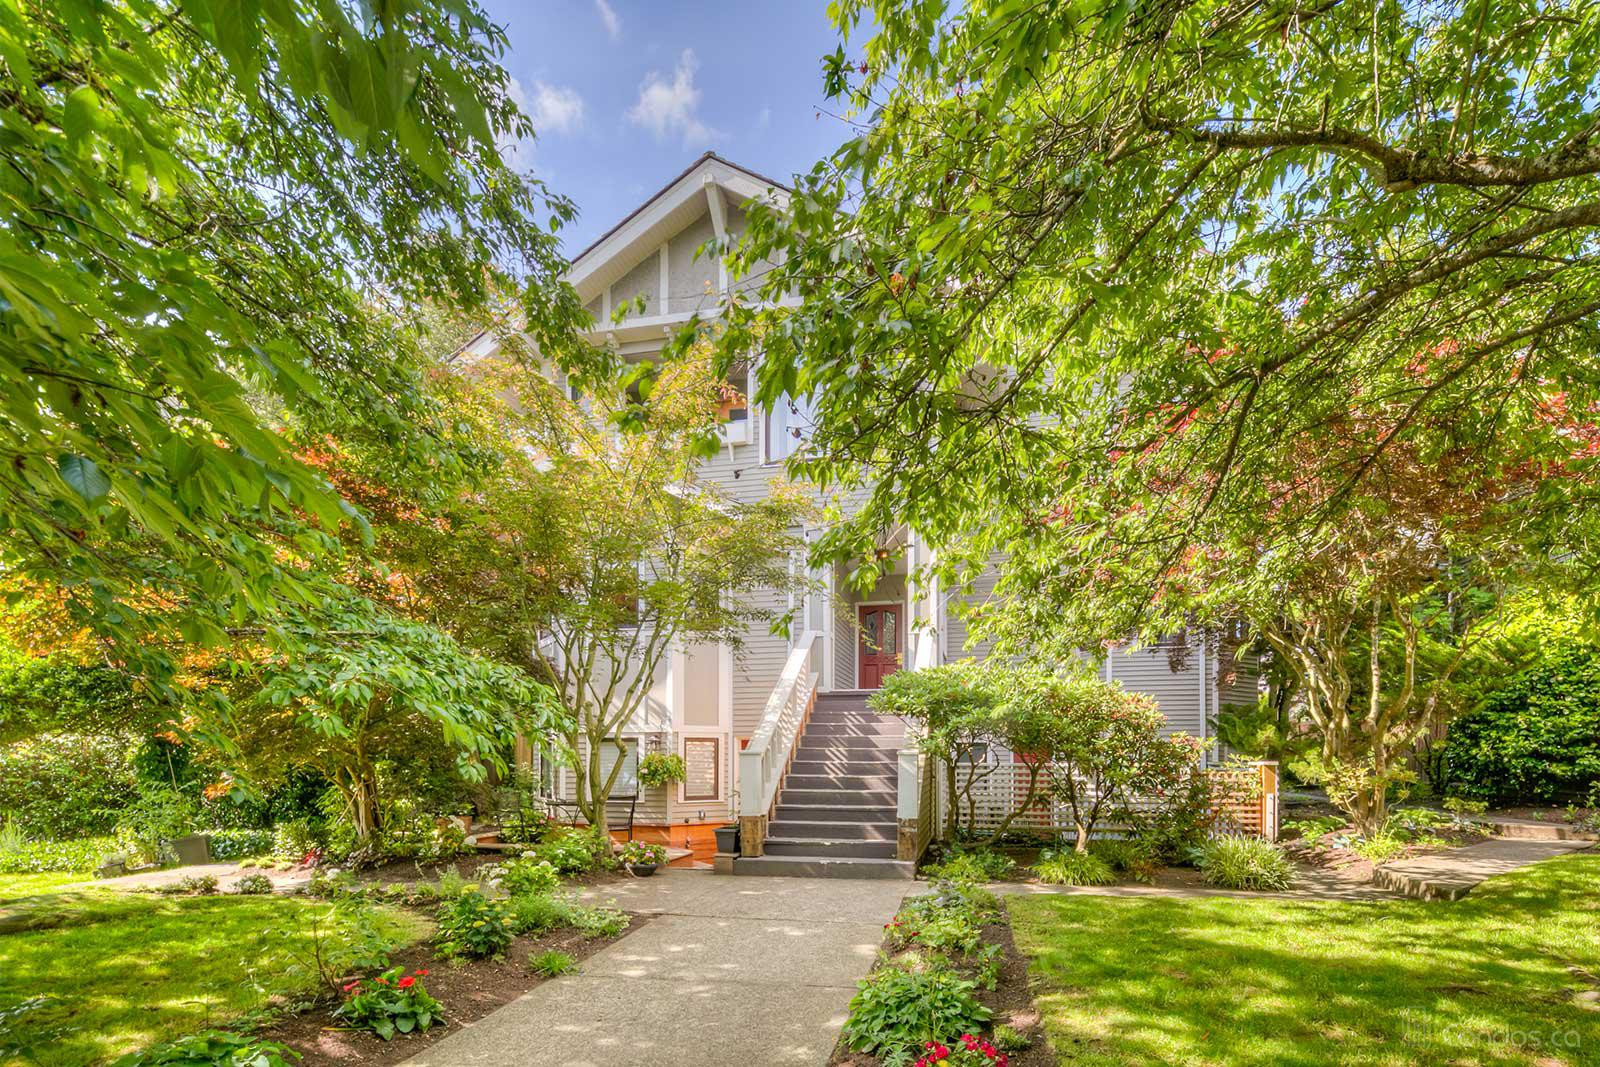 2017 West 15th at 2017 W 15th Av, Vancouver 1